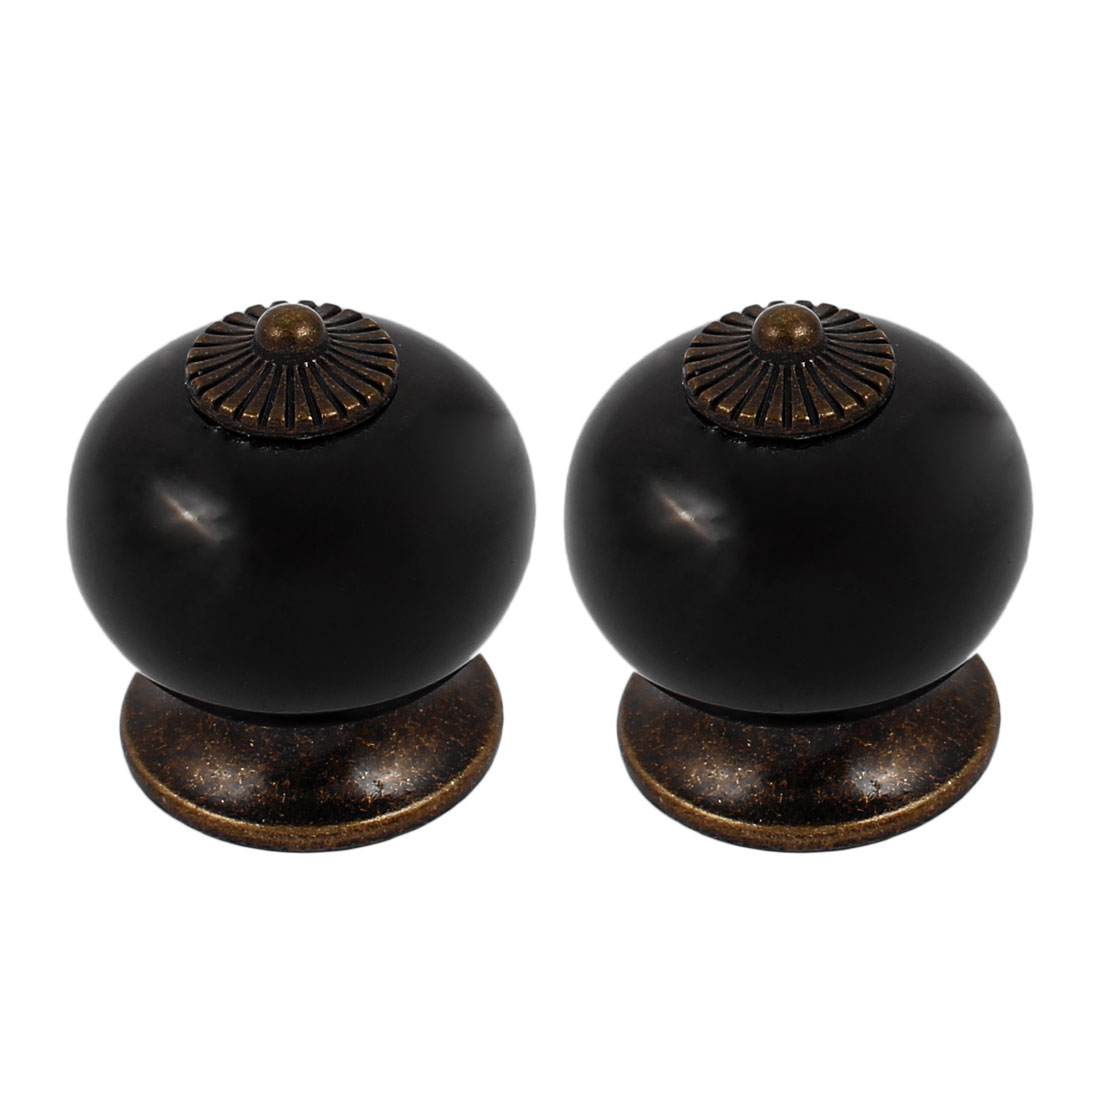 Cabinet Wardrobe Drawer Door Pull Round Ceramic Knobs Handle Black 2pcs